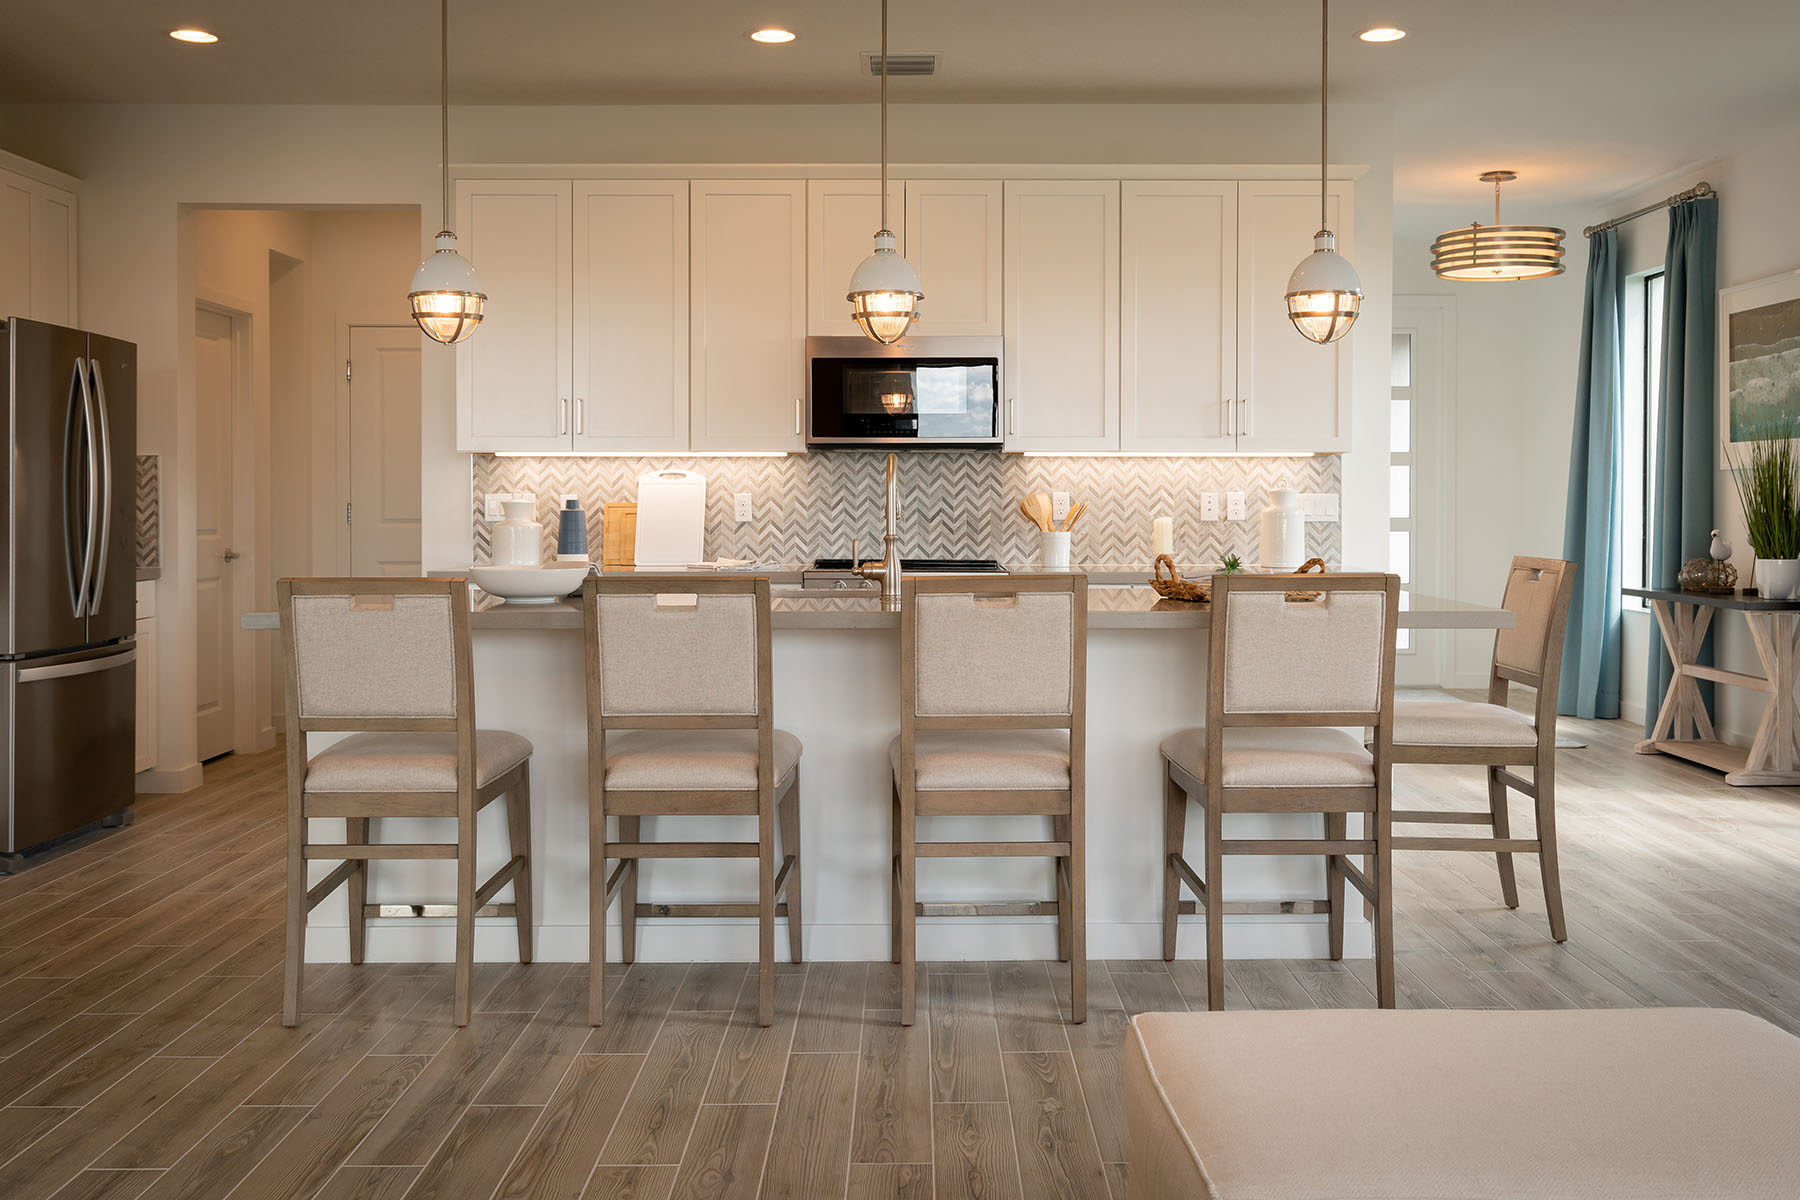 Sunbrooke Plan Kitchen at Saddlewood in Lake Worth Florida by Mattamy Homes